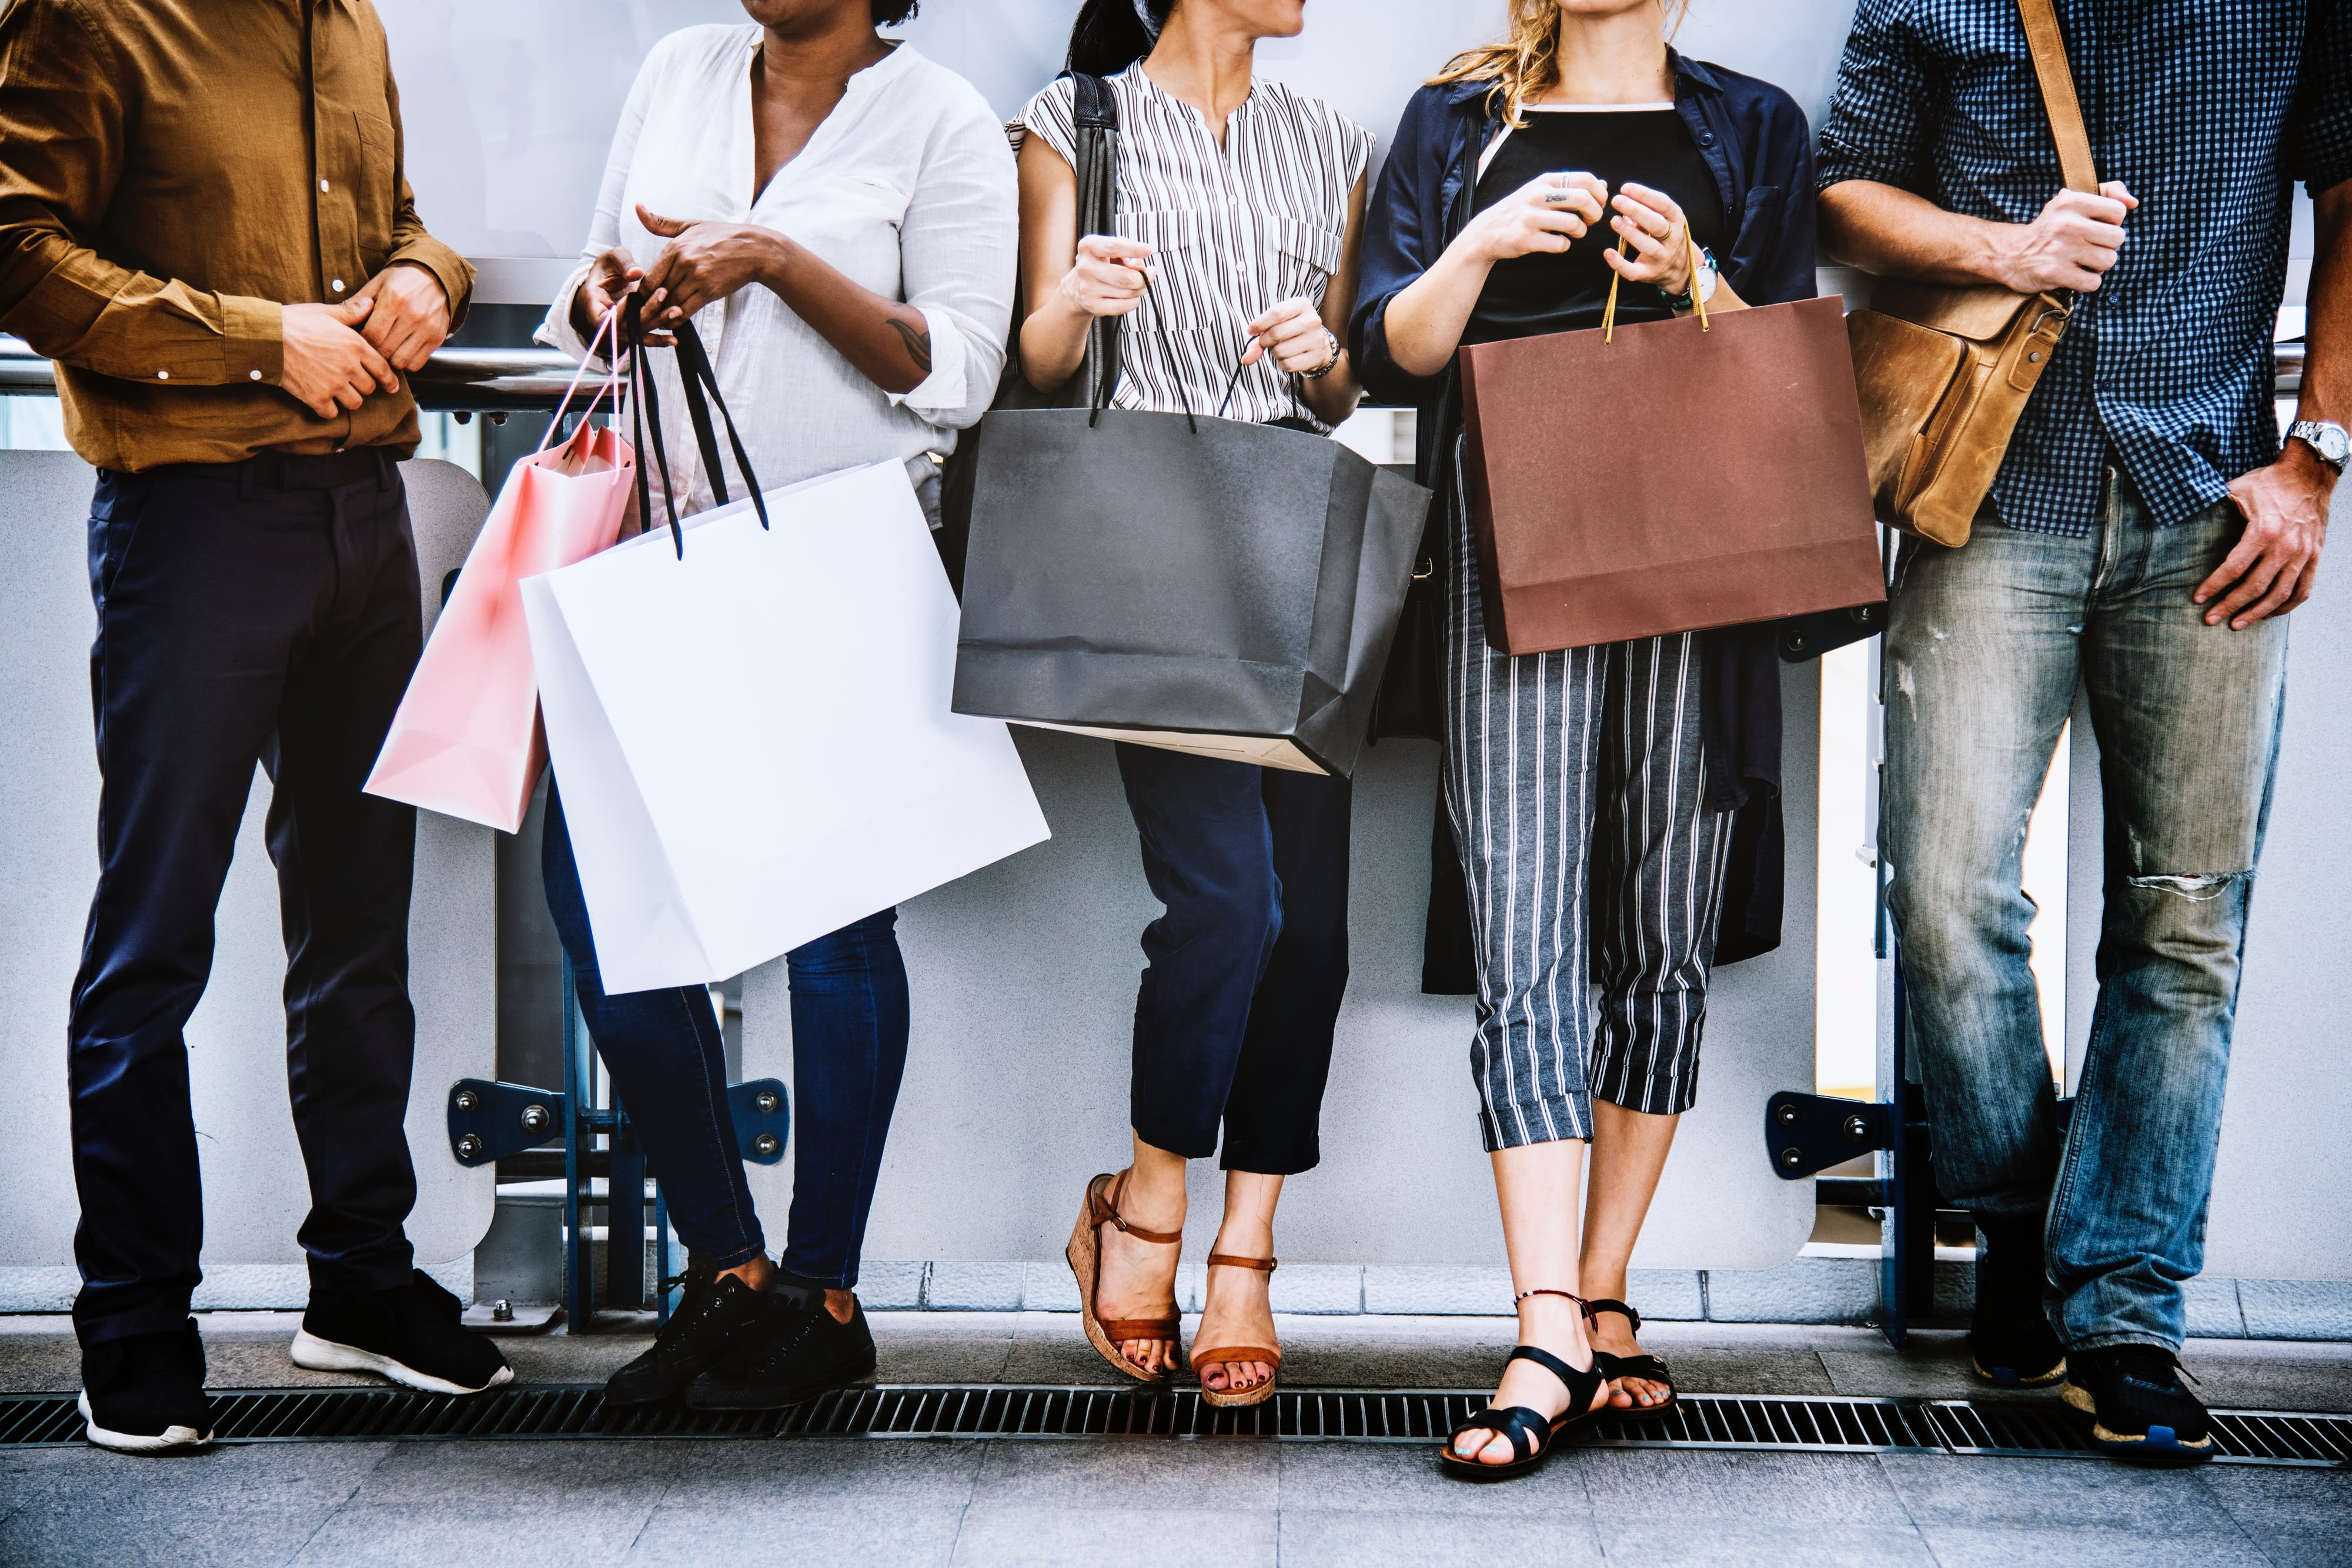 Shoppers standing around with shopping bags